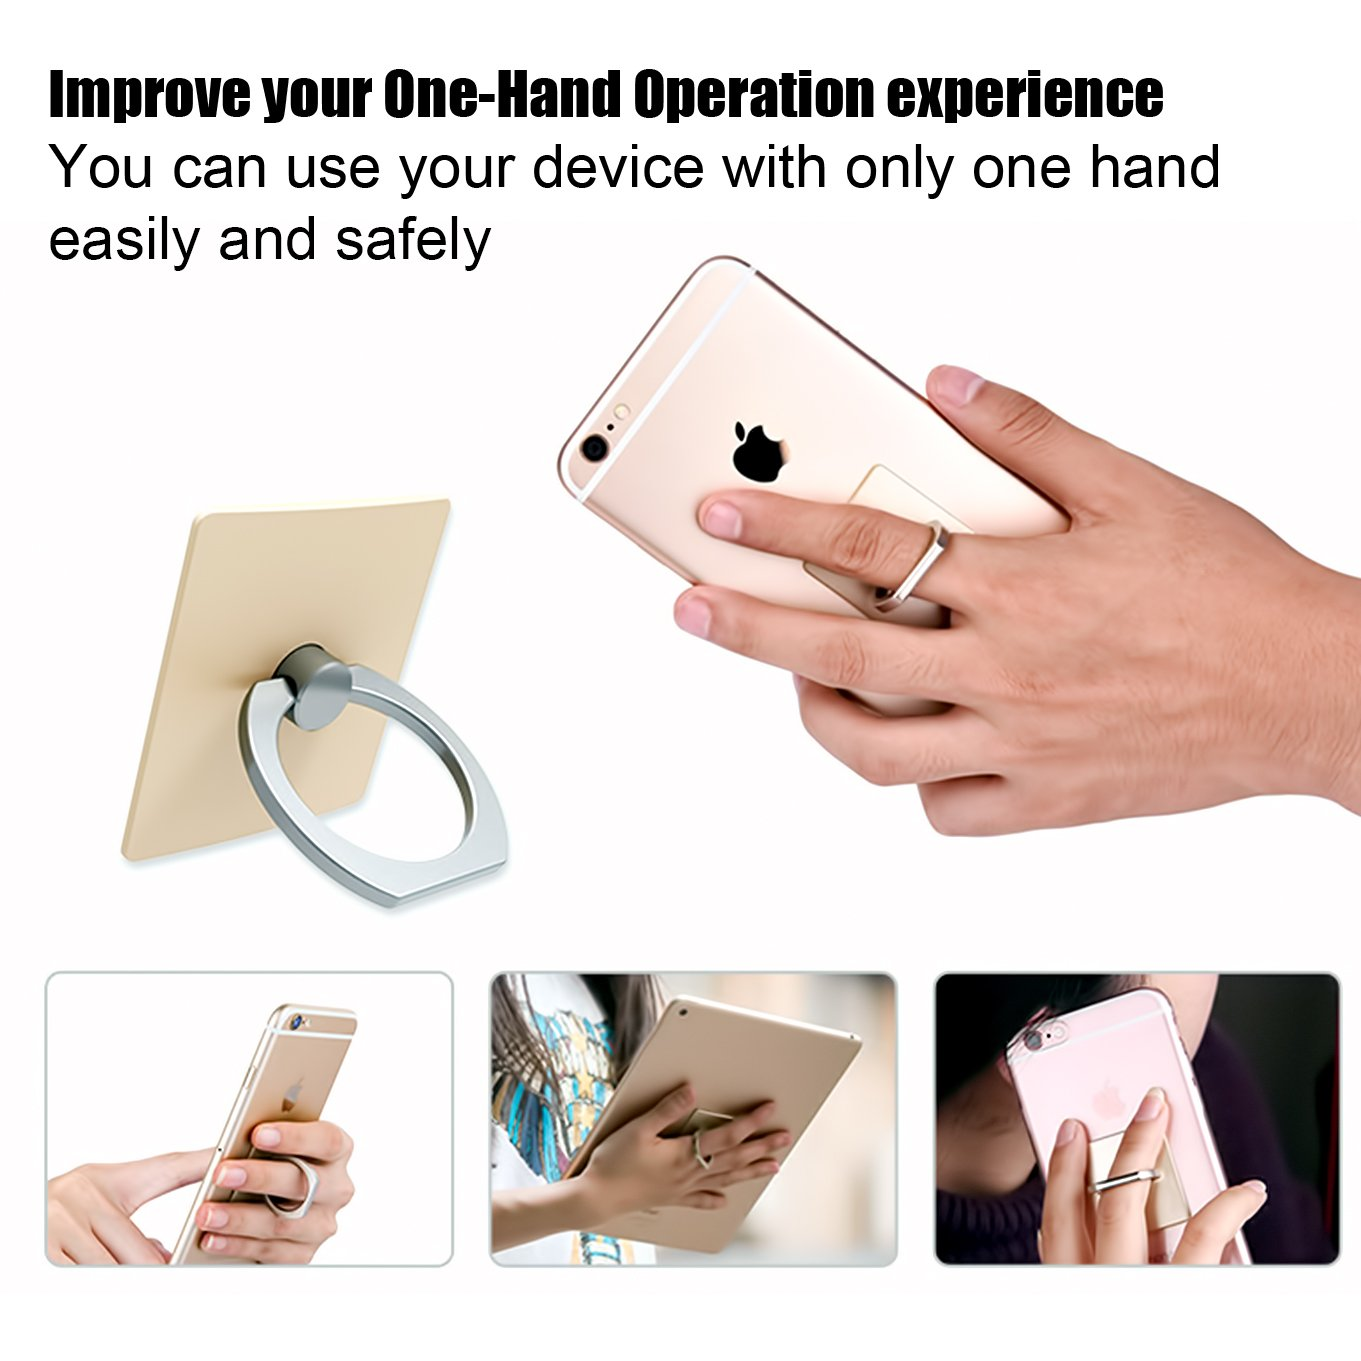 2 Pack Black+silver Cell Phone Ring Holder Stand,CaseHQ Finger Grip Loop Mount 360 degree Rotation Universal Smartphone Kickstand for iphone X 8 7 7Plus Samsung Galaxy S9 S9 plus S7 S8 LG Google